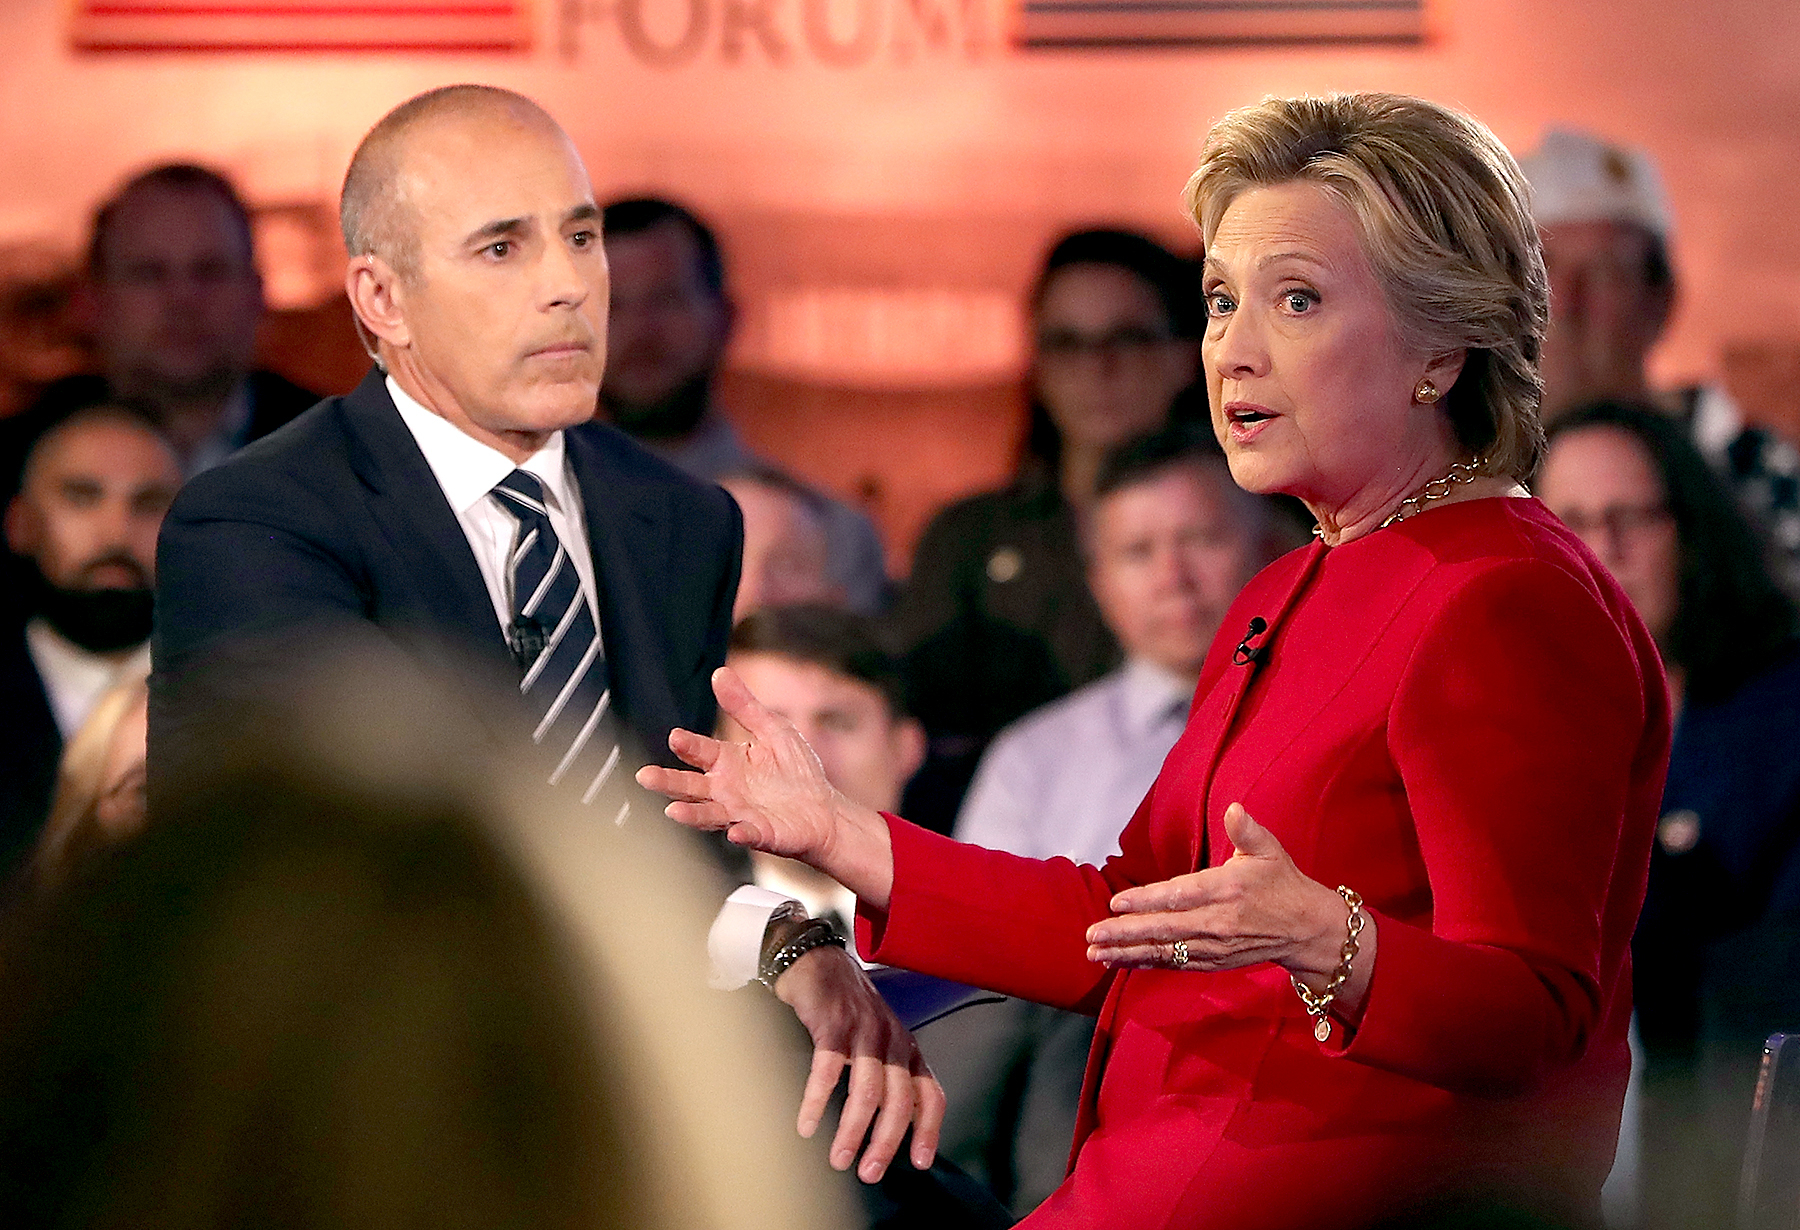 Matt Lauer looks on as Democratic presidential nominee and former Secretary of State Hillary Clinton speaks during the NBC News Commander-in-Chief Forum on Sept. 7, 2016, in New York City.